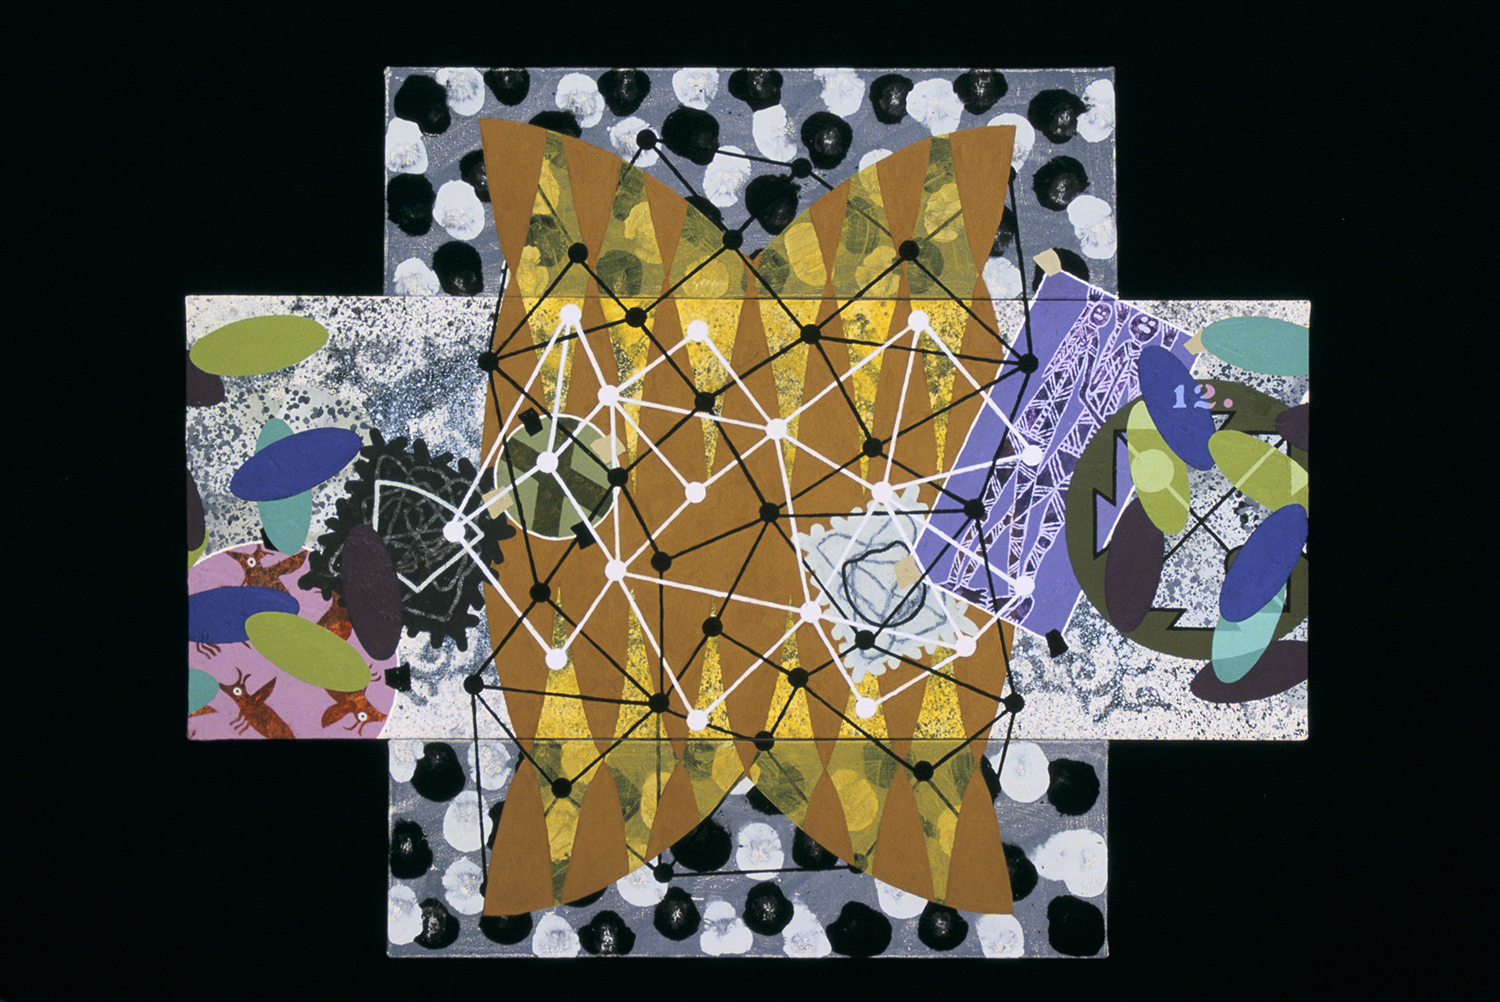 Triptych 8  , 2001, oil and wax on canvas, 40 x 36 in.